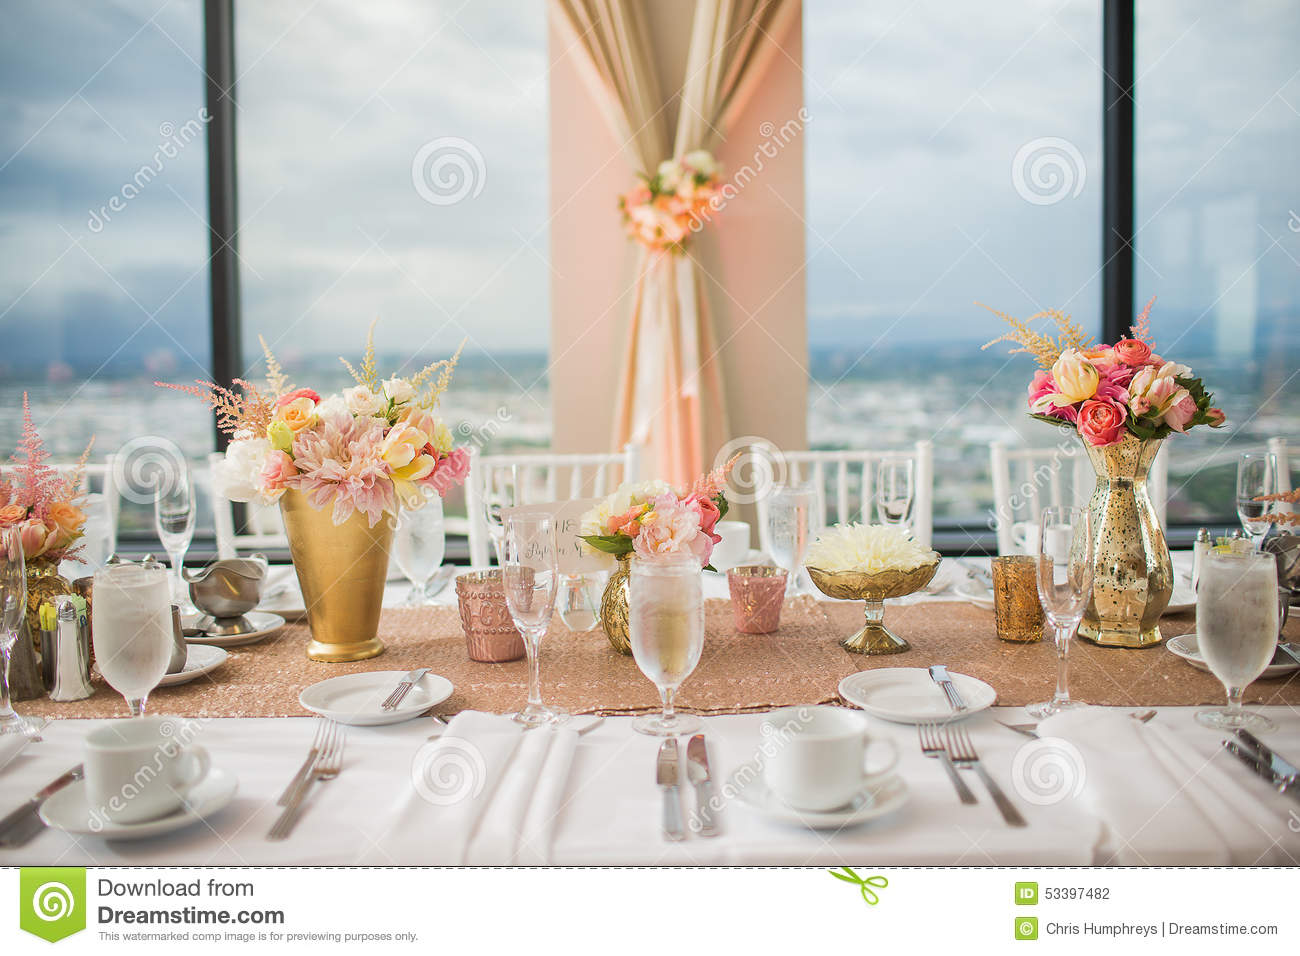 Wedding reception centerpieces stock photo image of